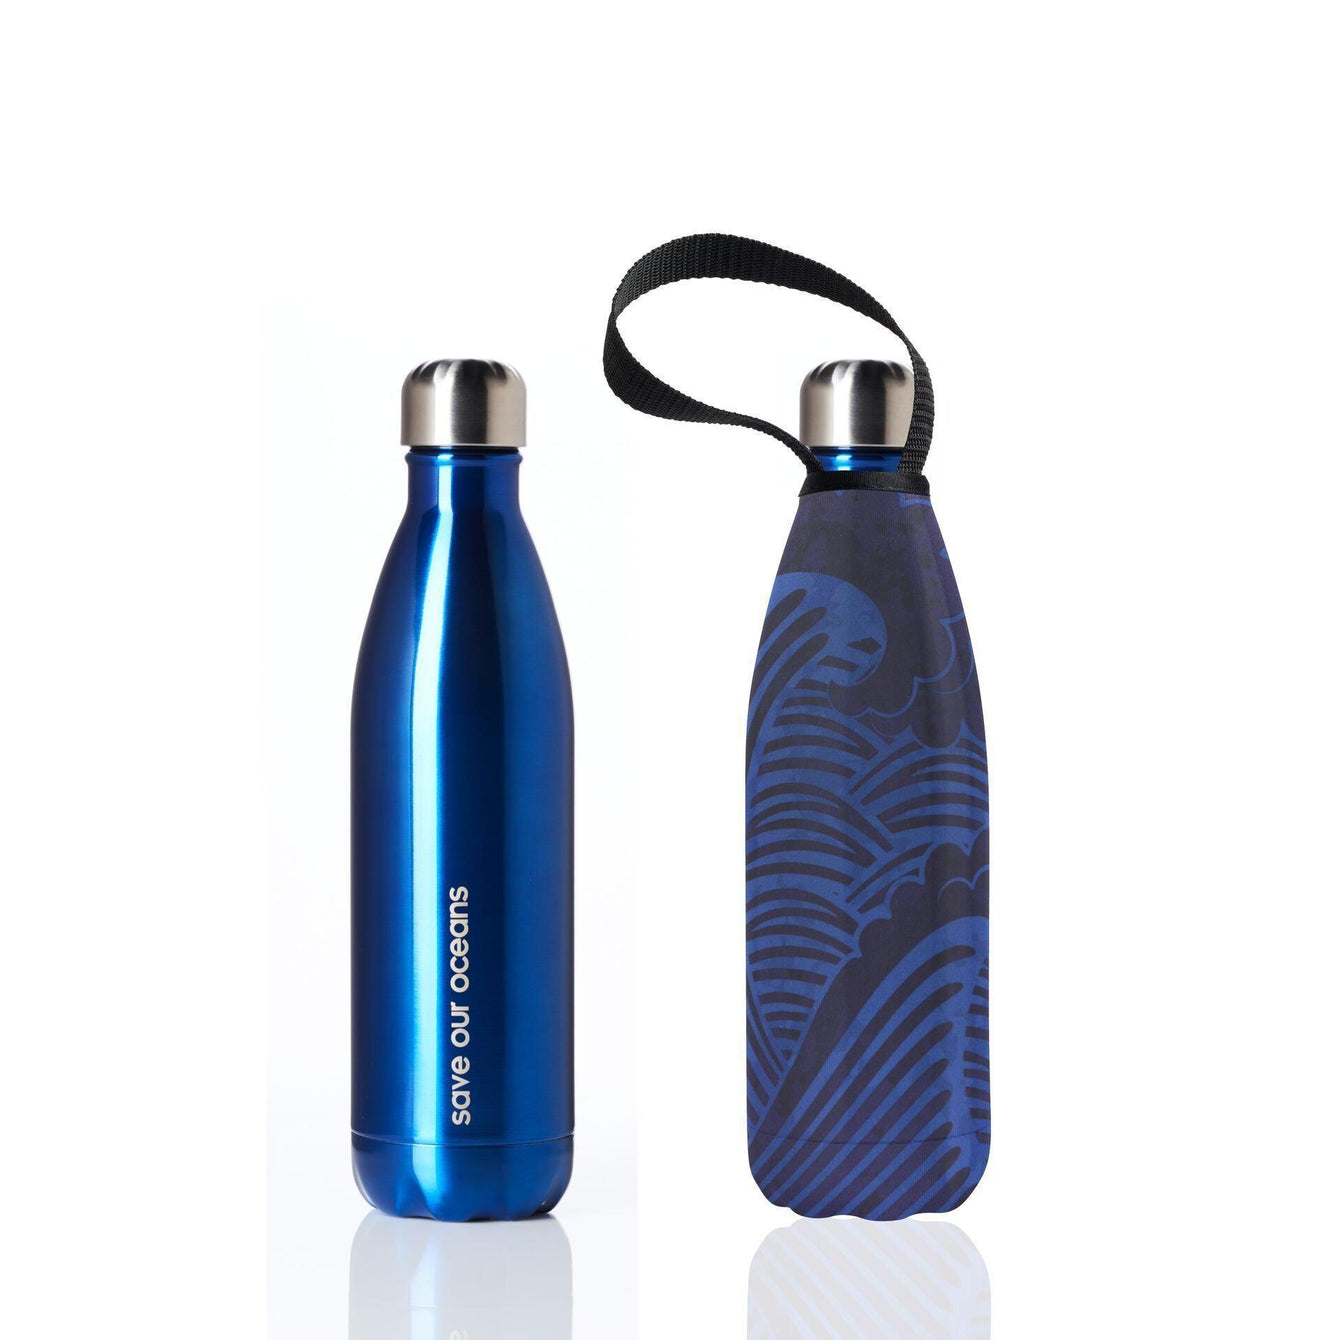 Insulated Eco Friendly 25oz Drink Bottle with Patterned Carry Covers-Home - Travel + Outdoors - Drink Bottles-BBBYO USA-Blue in Tsunami Pattern-Peccadilly